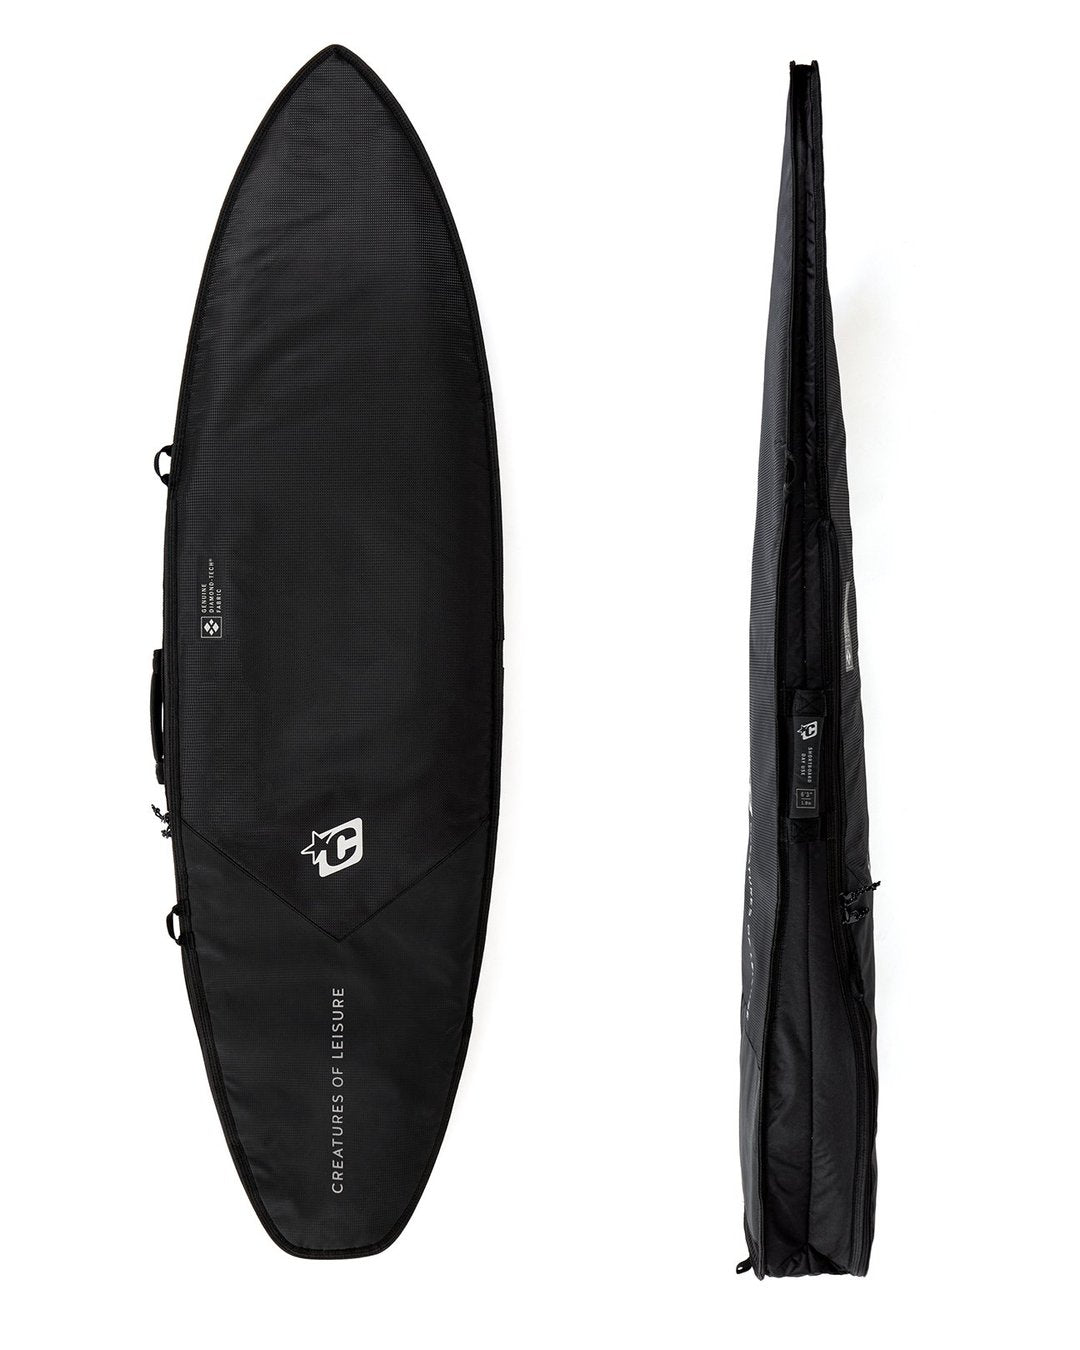 "Creatures SHORTBOARD DAY USE DT2.0 6'7"" : BLACK SILVER - Board Store CreaturesBoardcover"